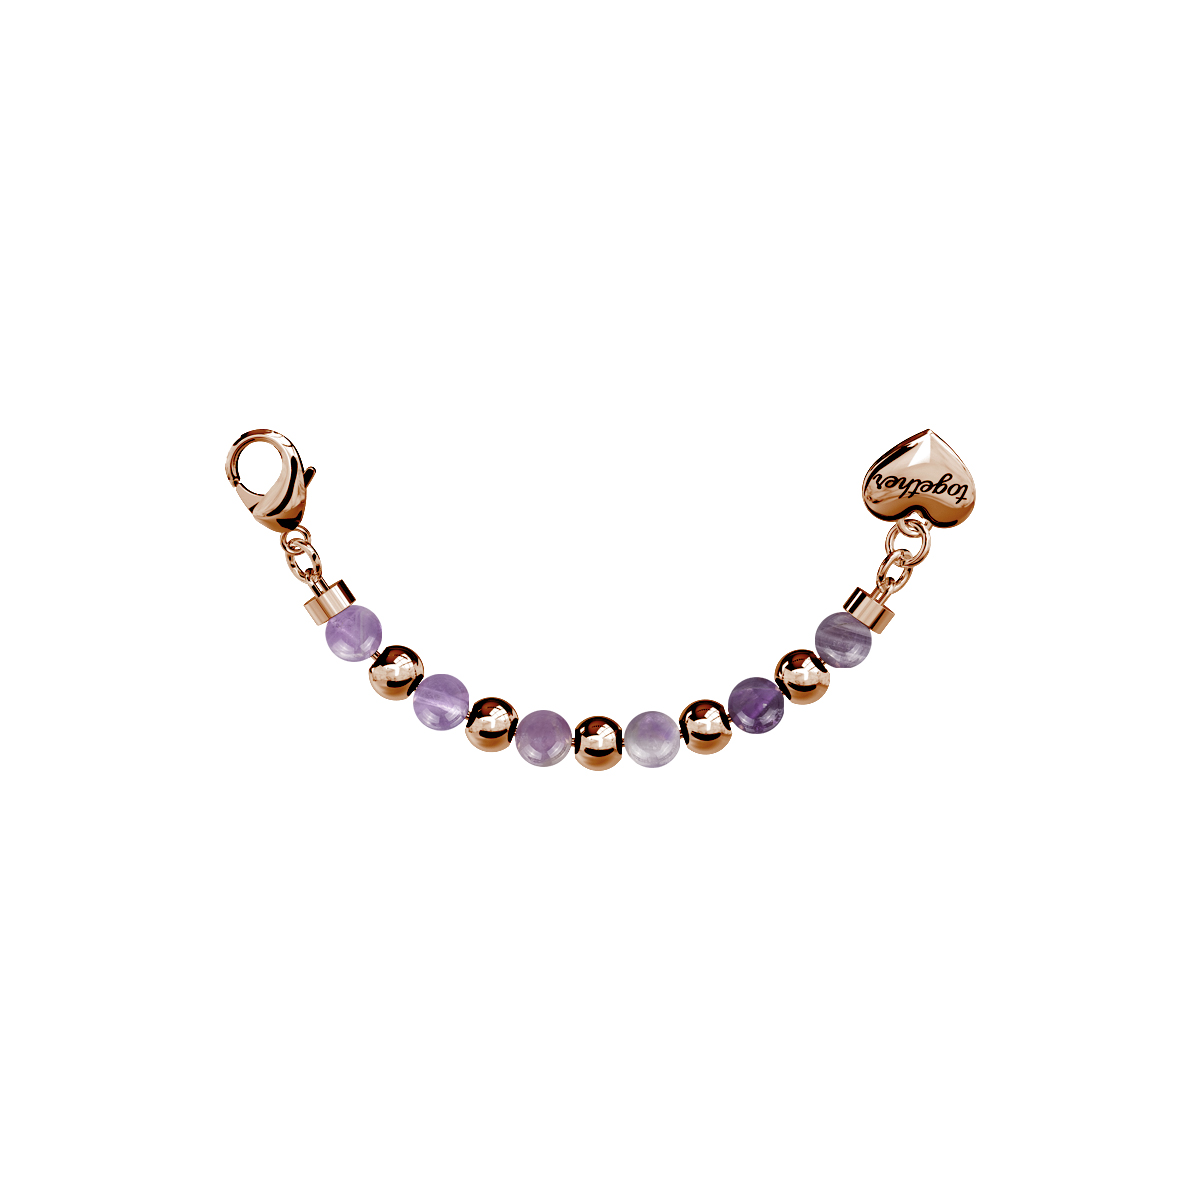 Elemento Single Bracciale 2jewels donna Together componibile ametista 131113